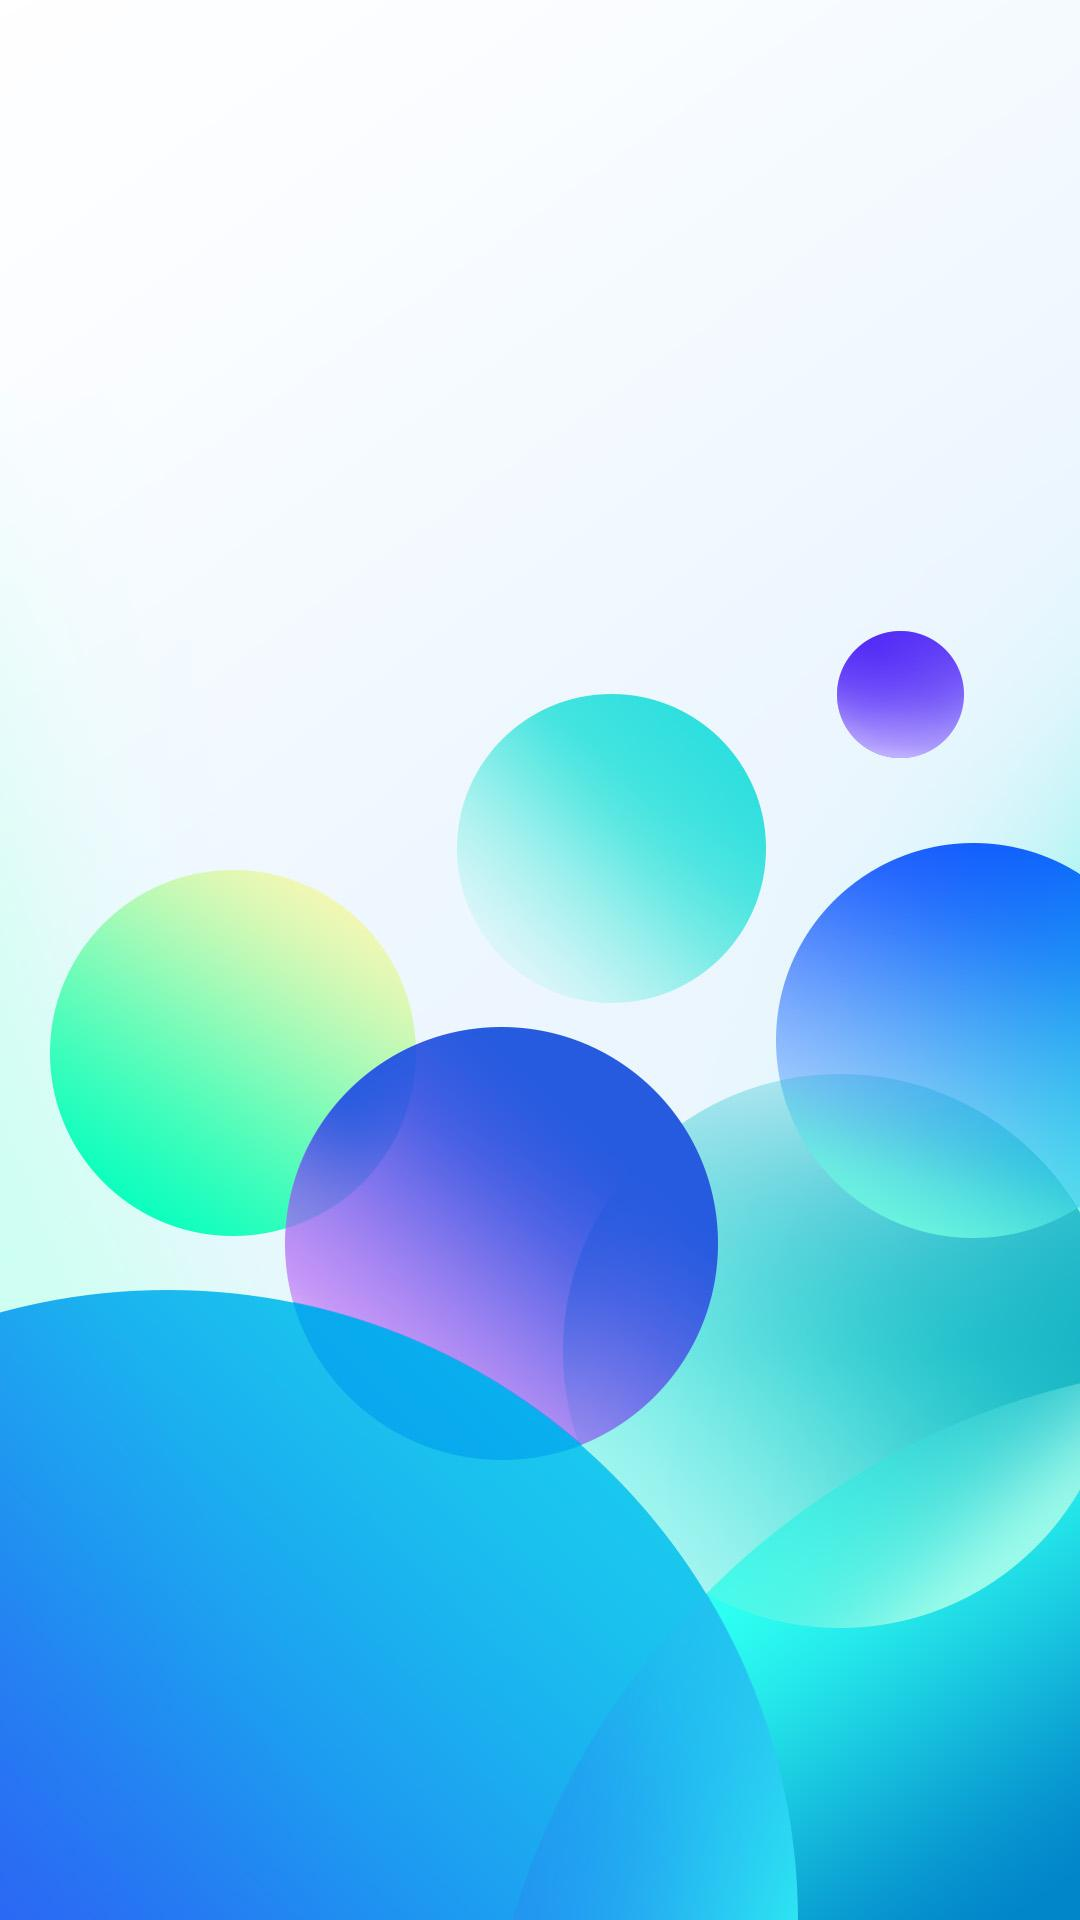 Flyme OS 5.0 HD wallpapers Mohamedovic 8